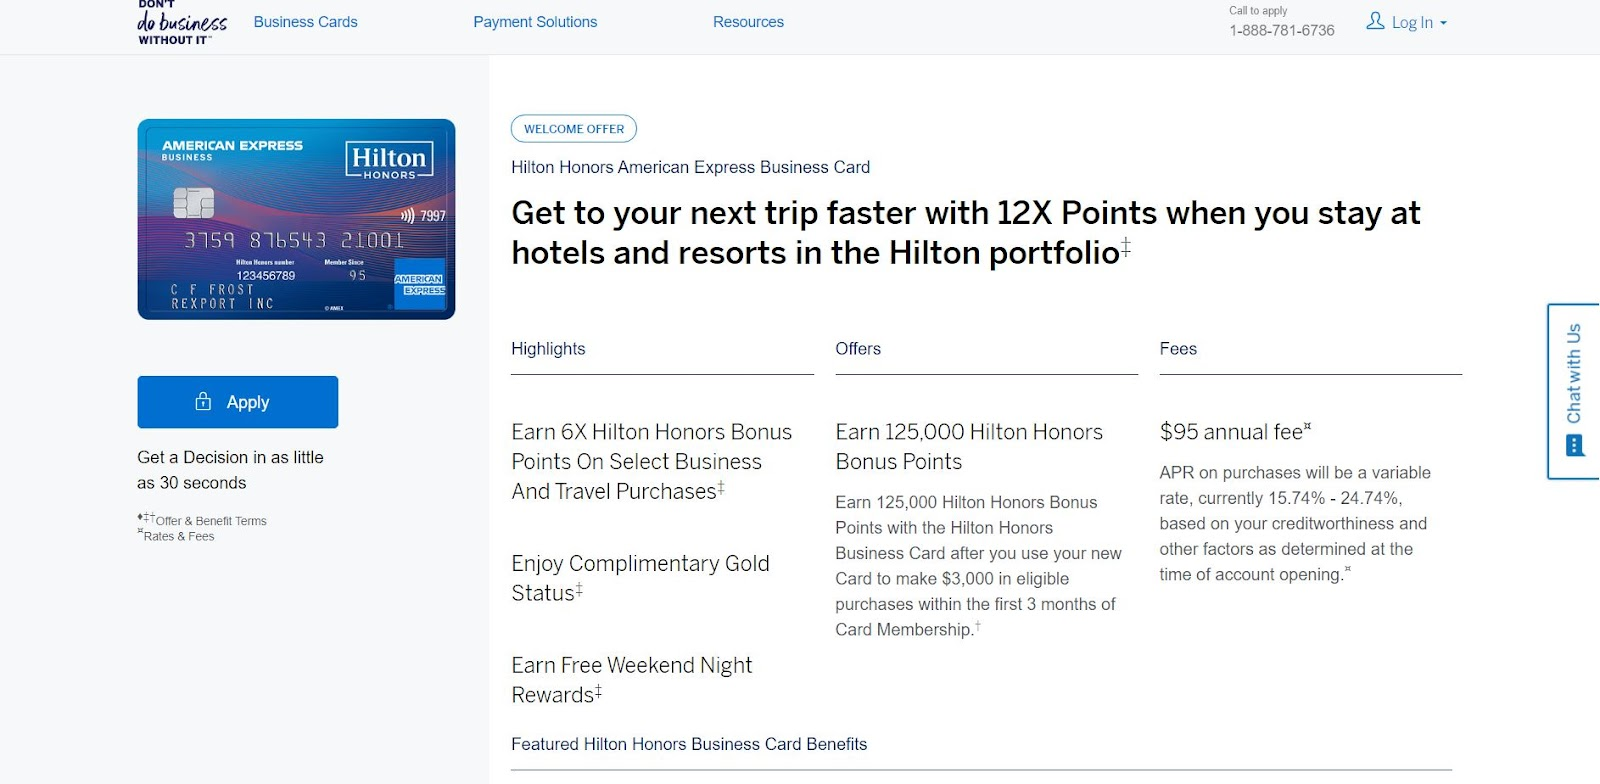 The Hilton Honors America Express Business Card: The Top 10 Business Credit Cards for Small Businesses